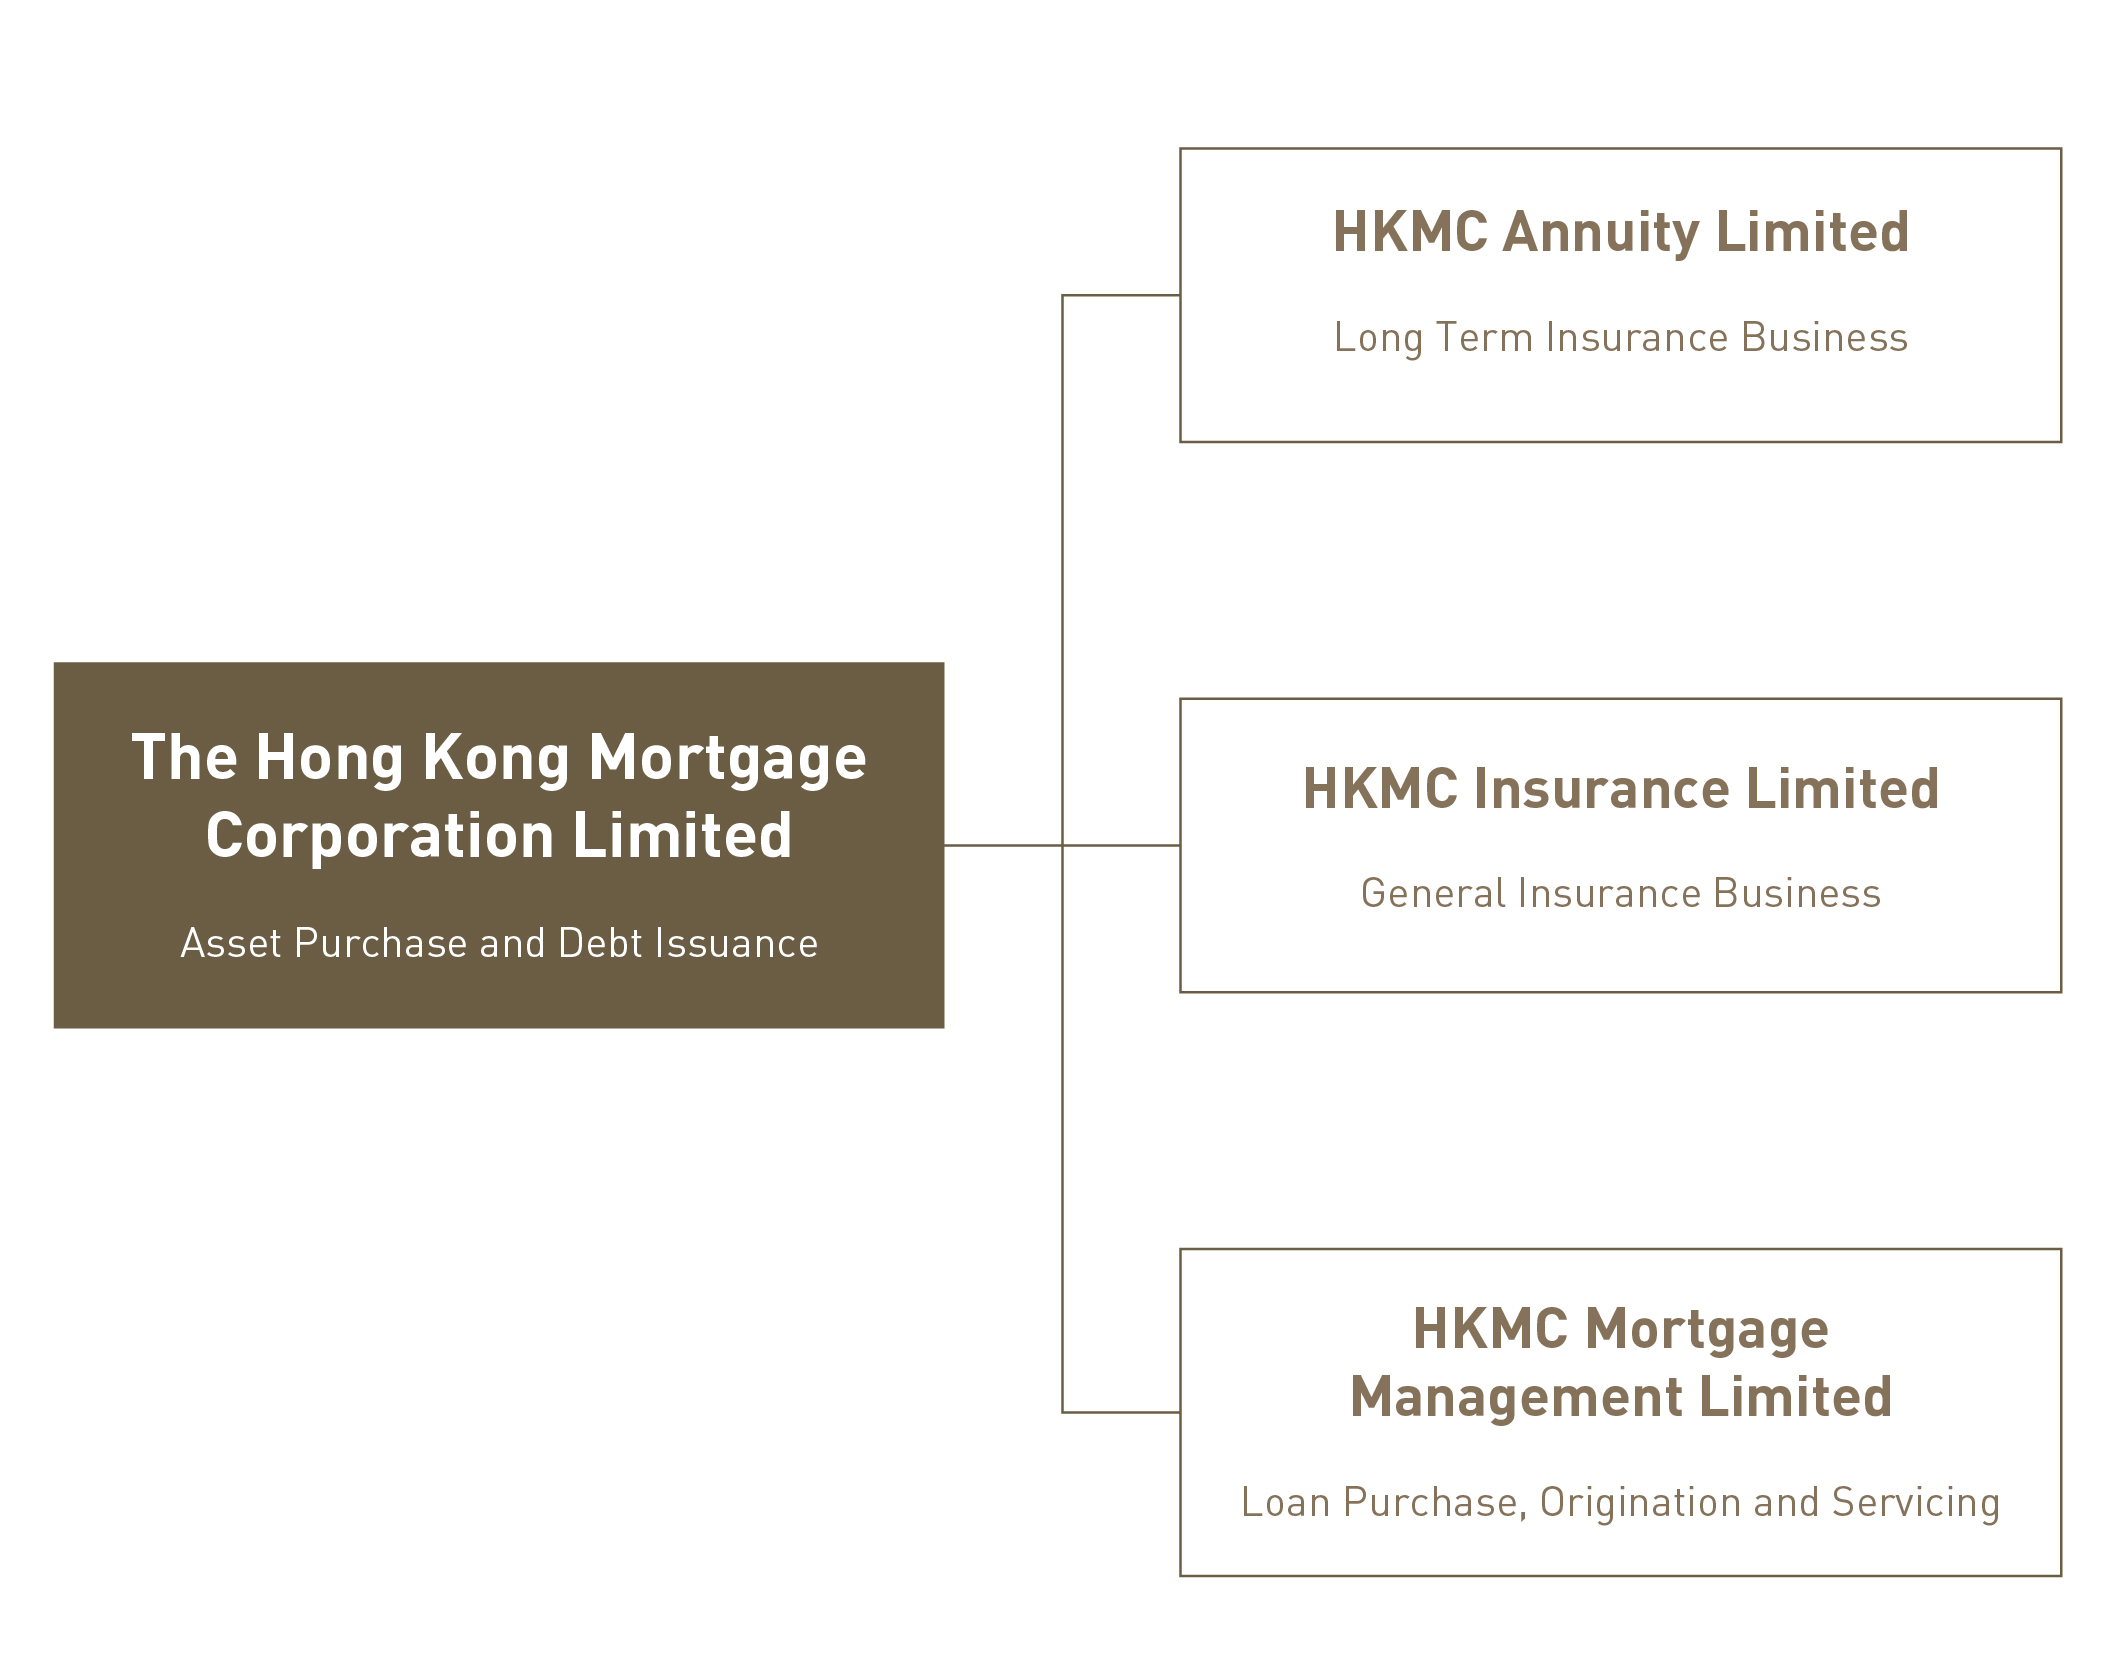 HKMC Group Organisation Structure